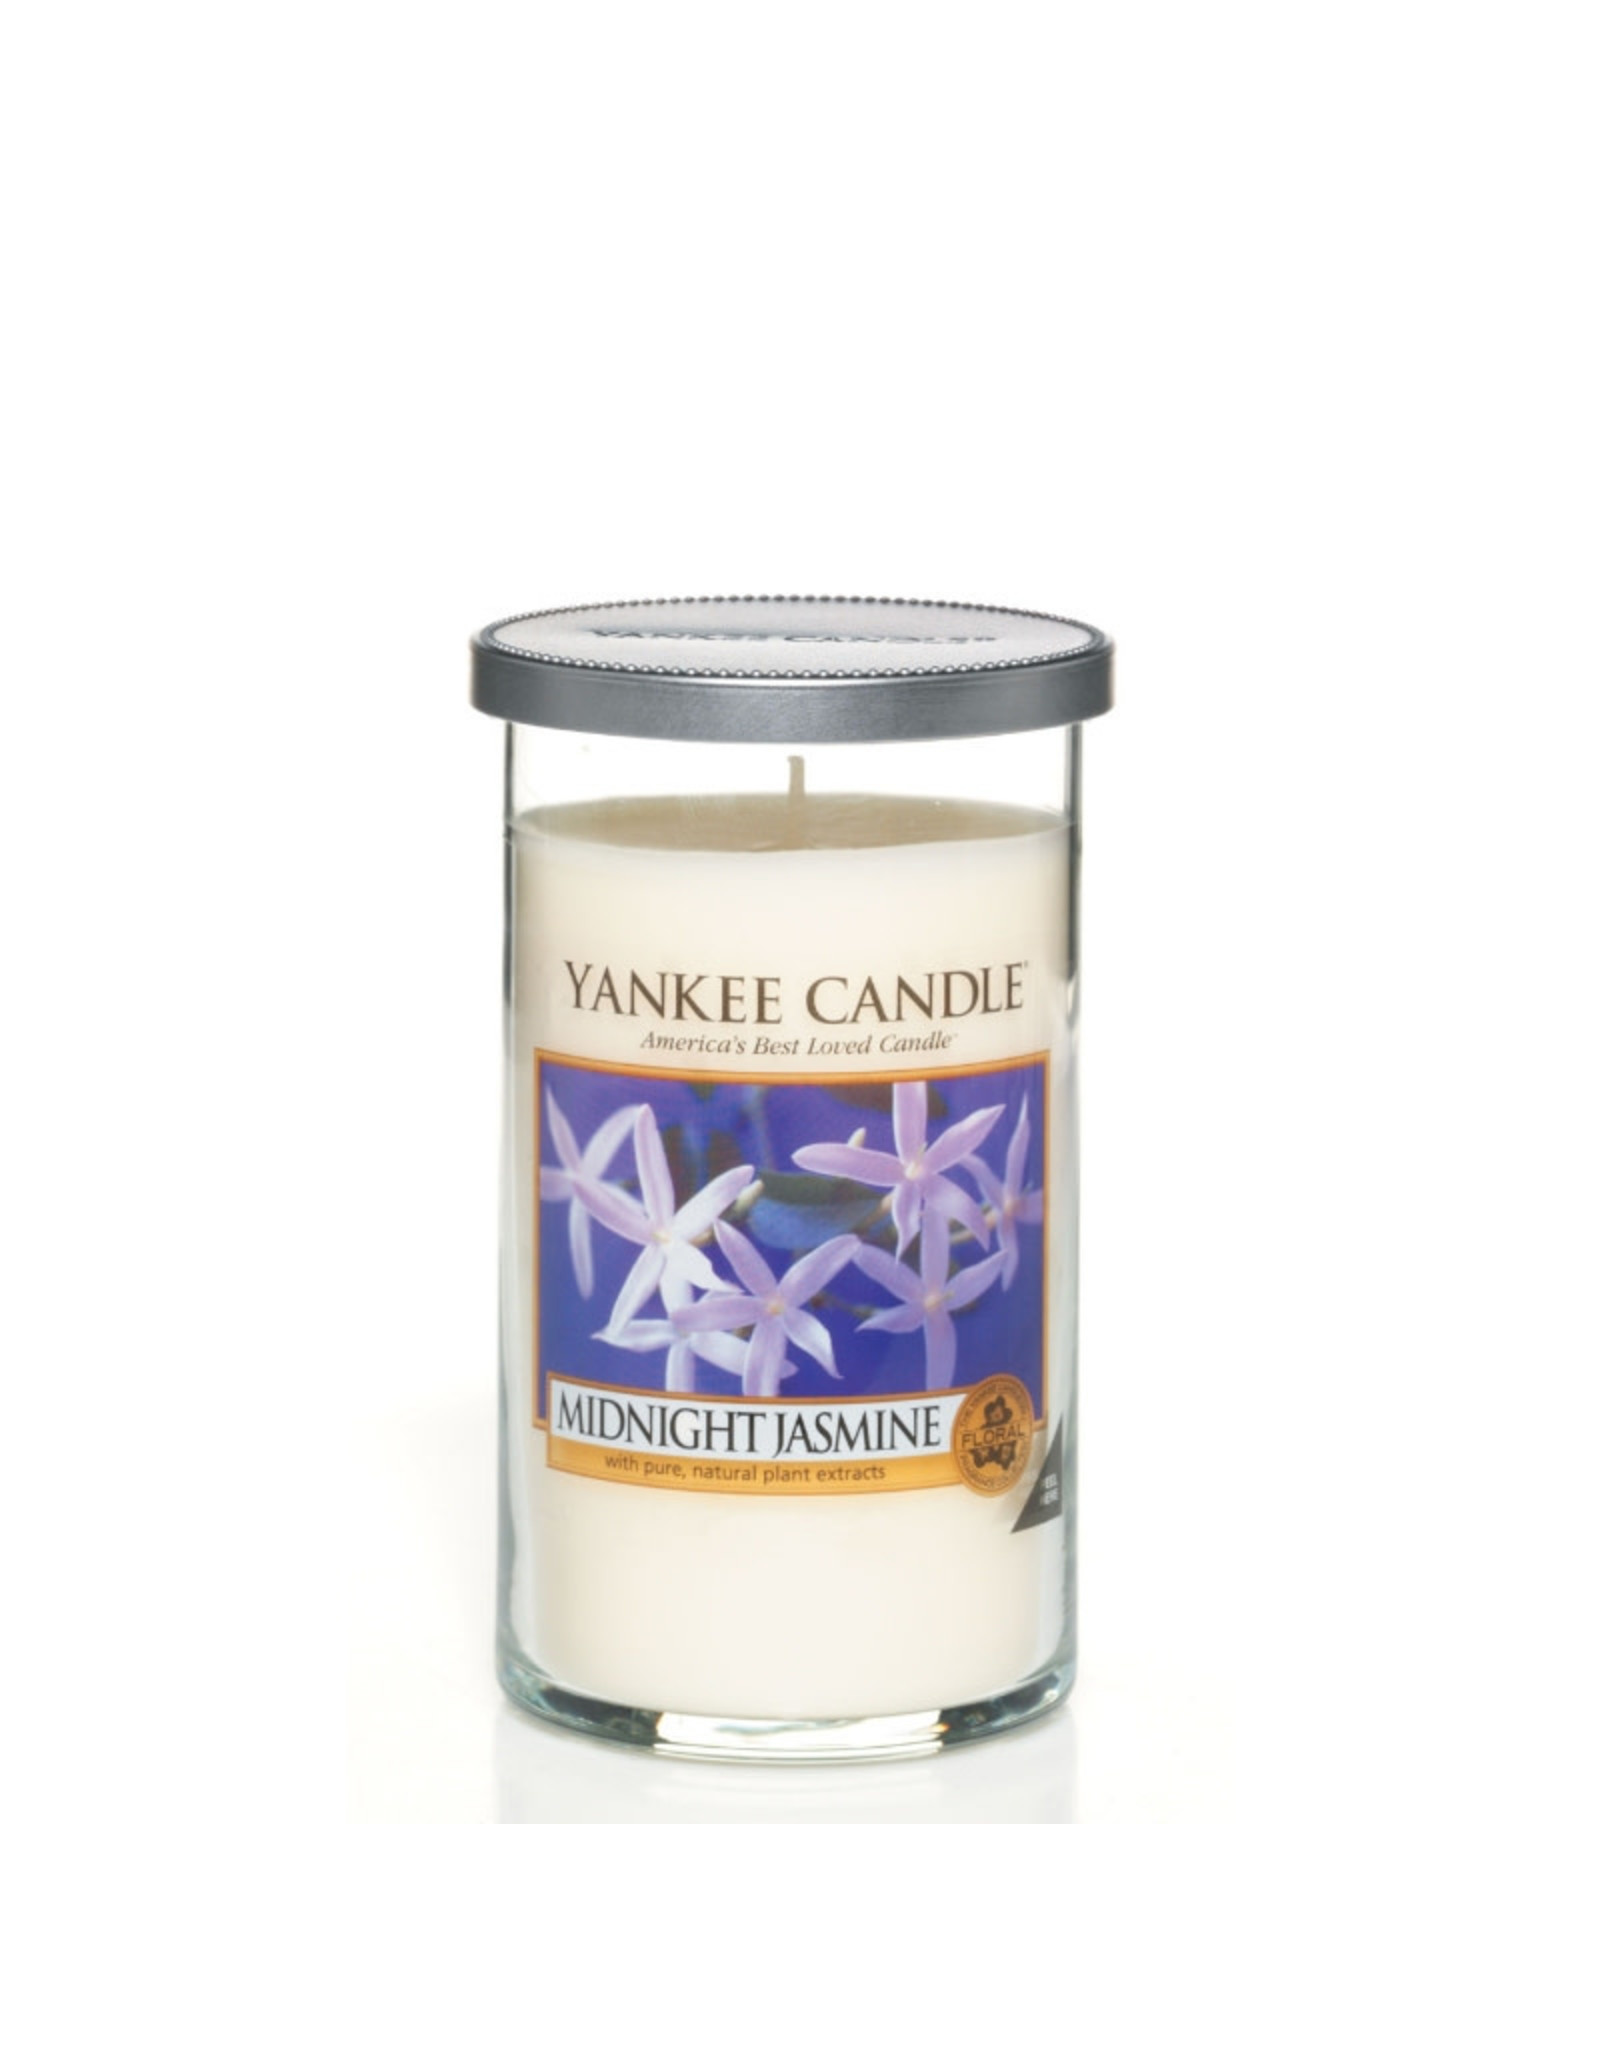 Yankee Candle Midnight Jasmine Medium Pillar